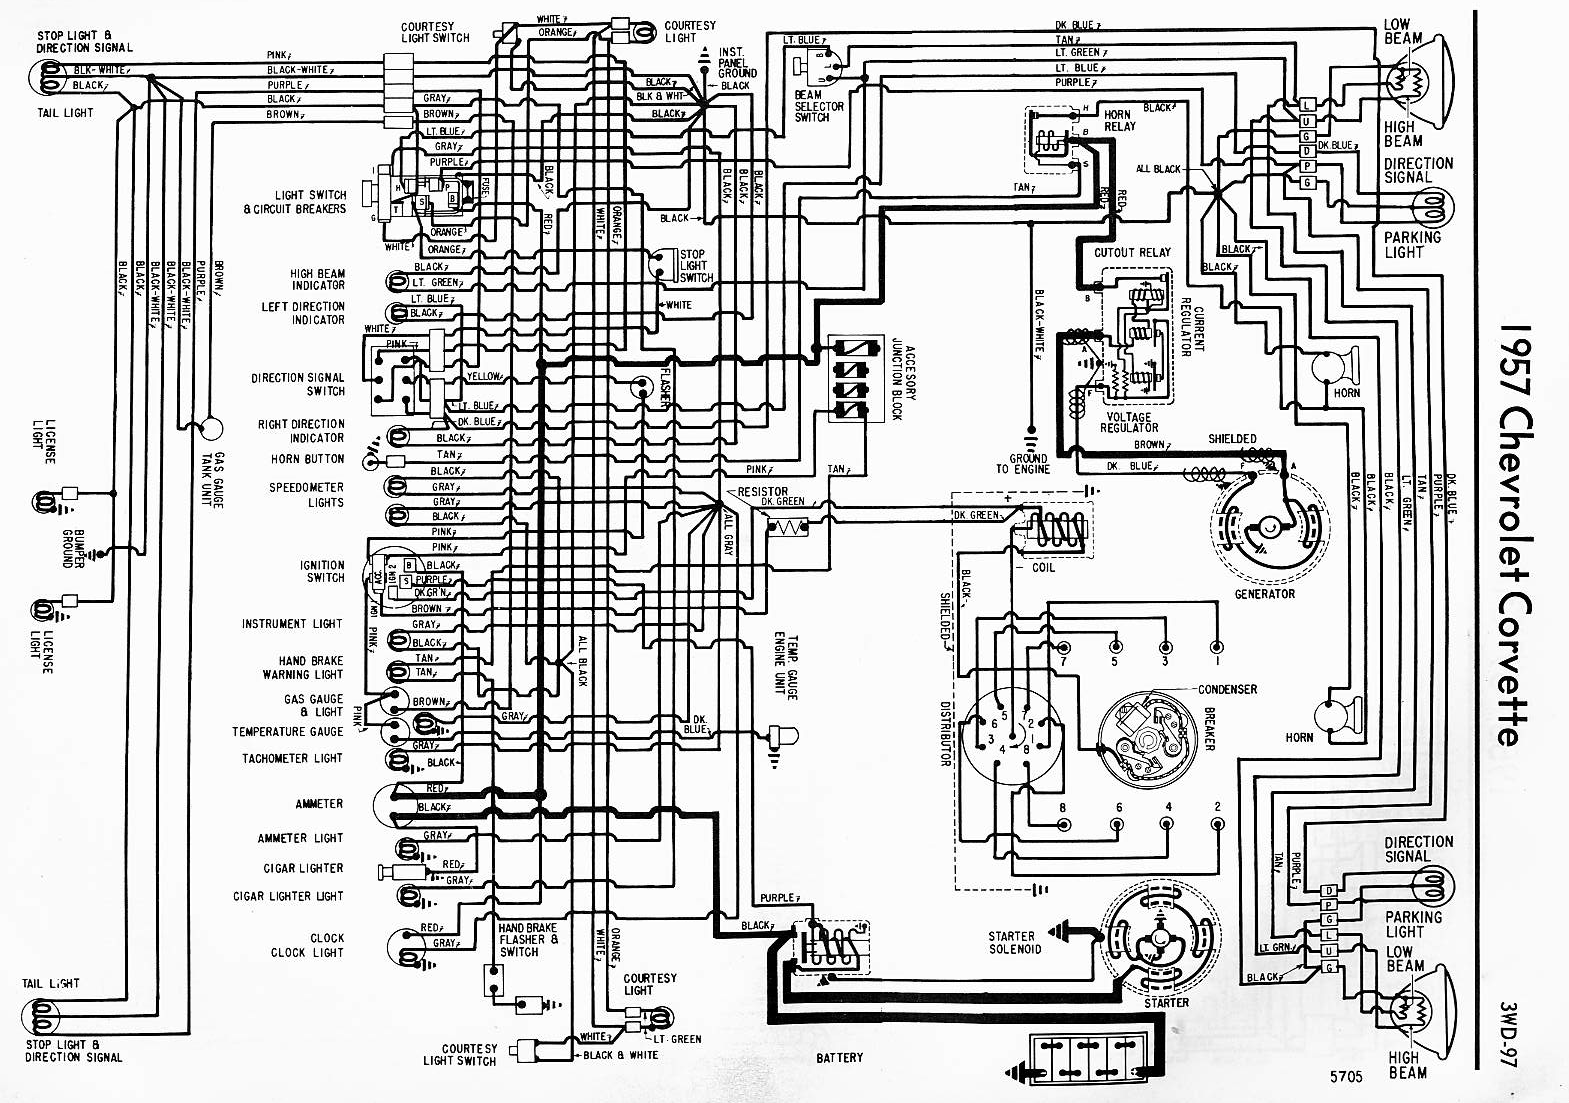 57 corvettte tracer schematic best one 1957 corvette wiring diagram willcox corvette, inc 1984 corvette wiring diagram schematic at mifinder.co